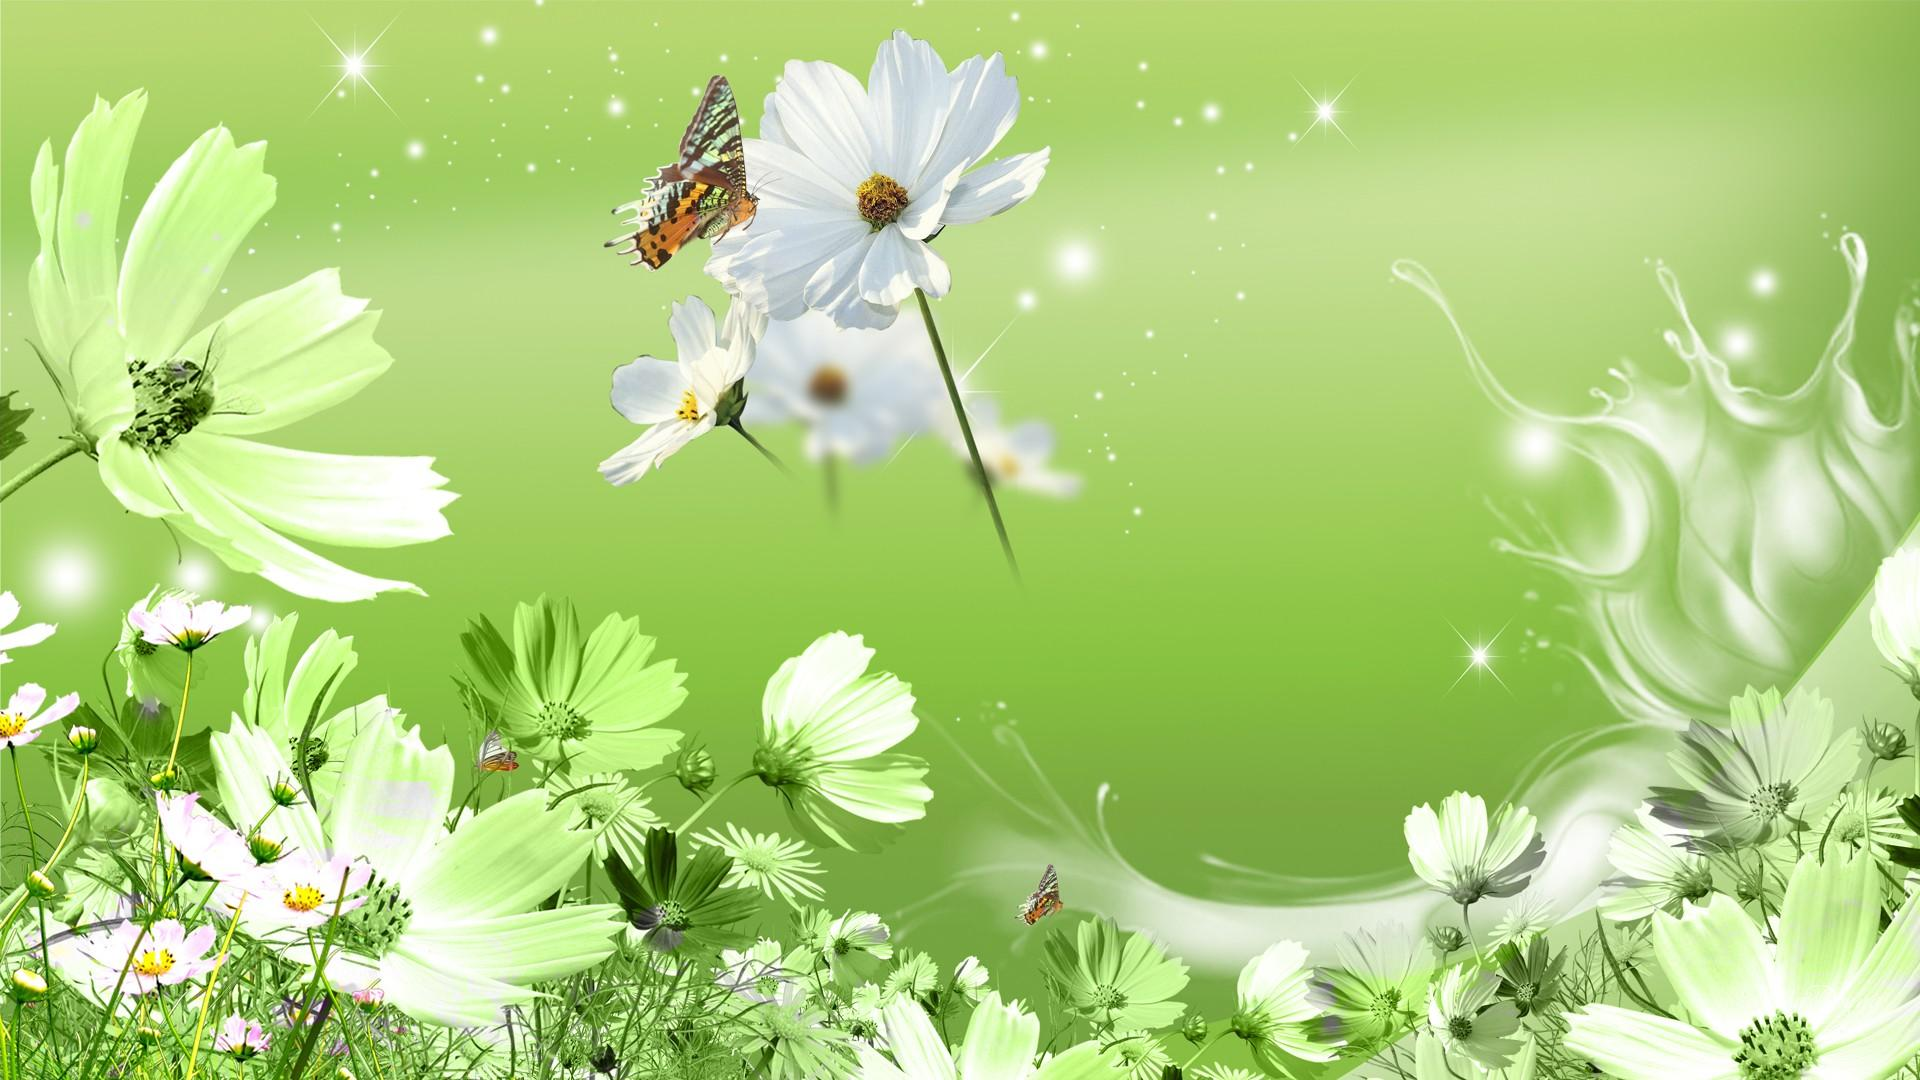 Green Flowers Wallpaper   All Wallpapers New 1920x1080